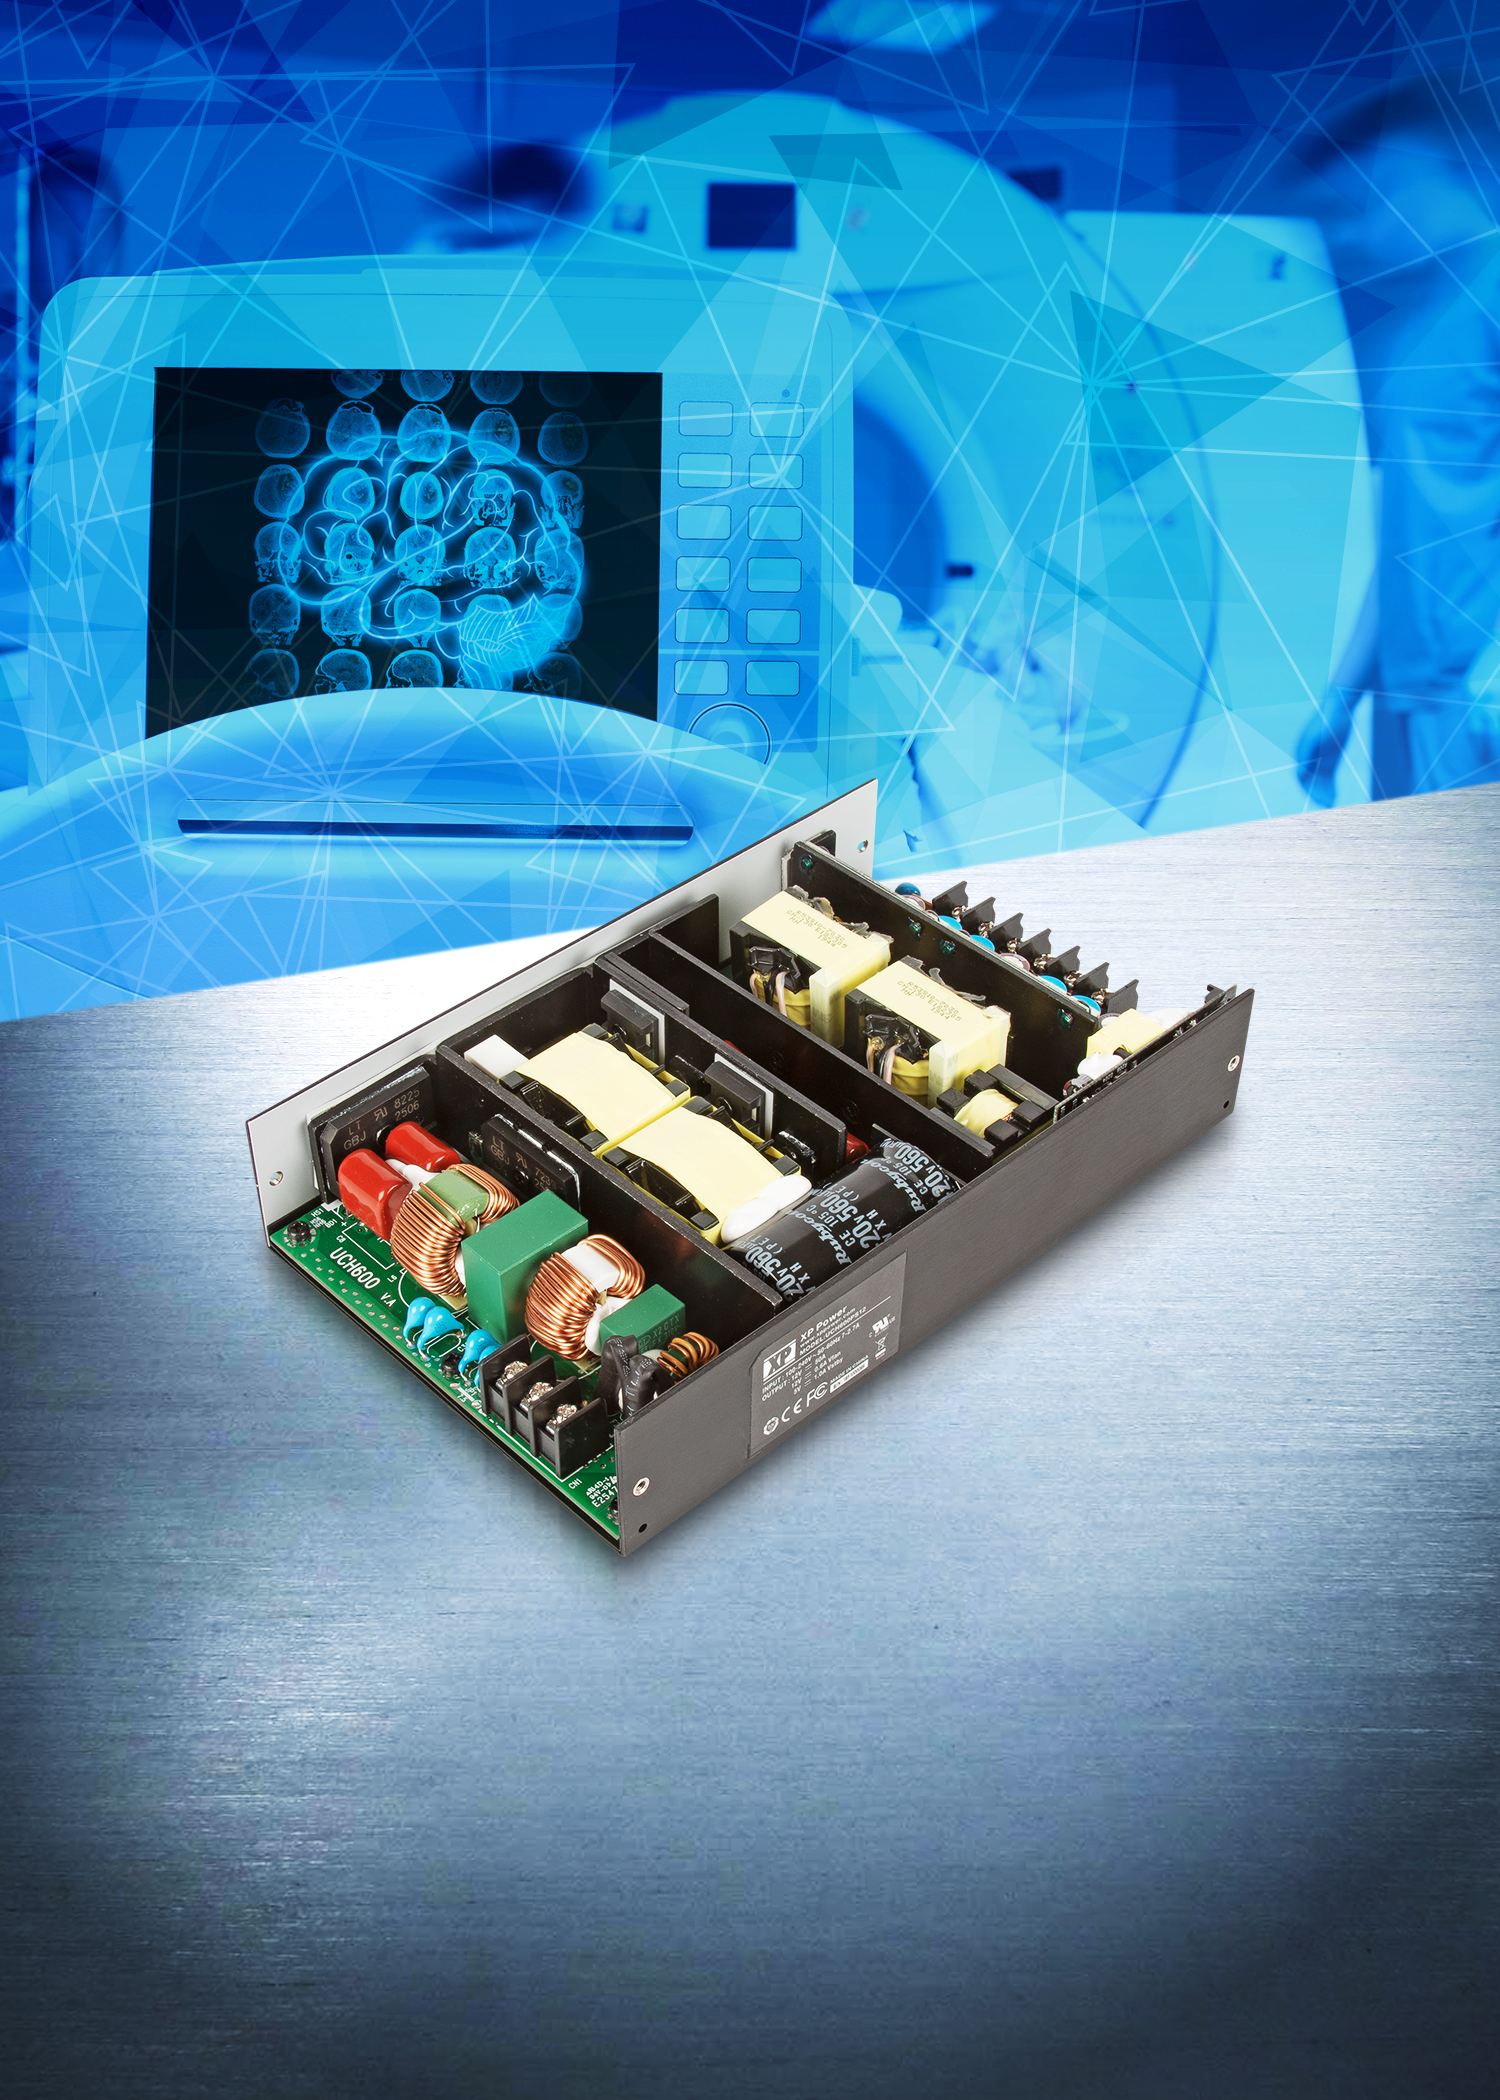 600W Fanless AC-DC Power Supply for Medical Applications